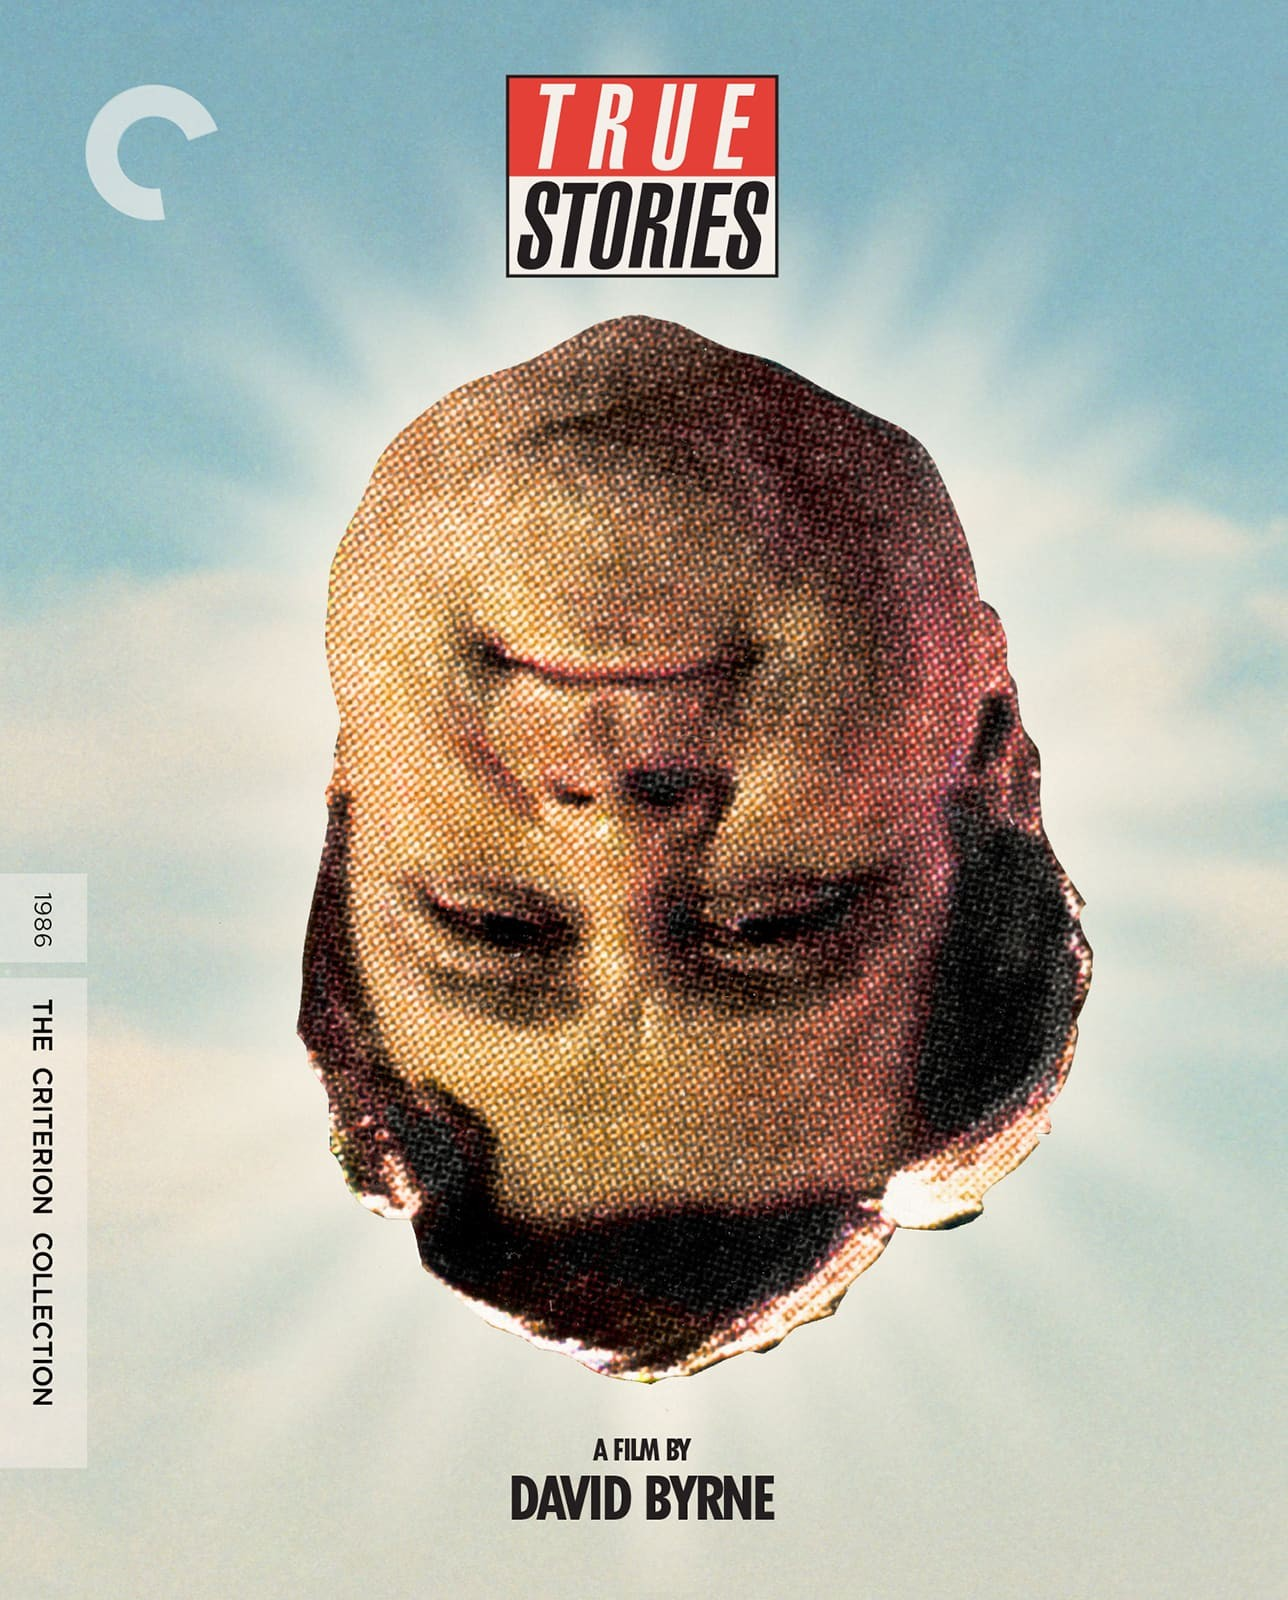 True Stories film David Byrne